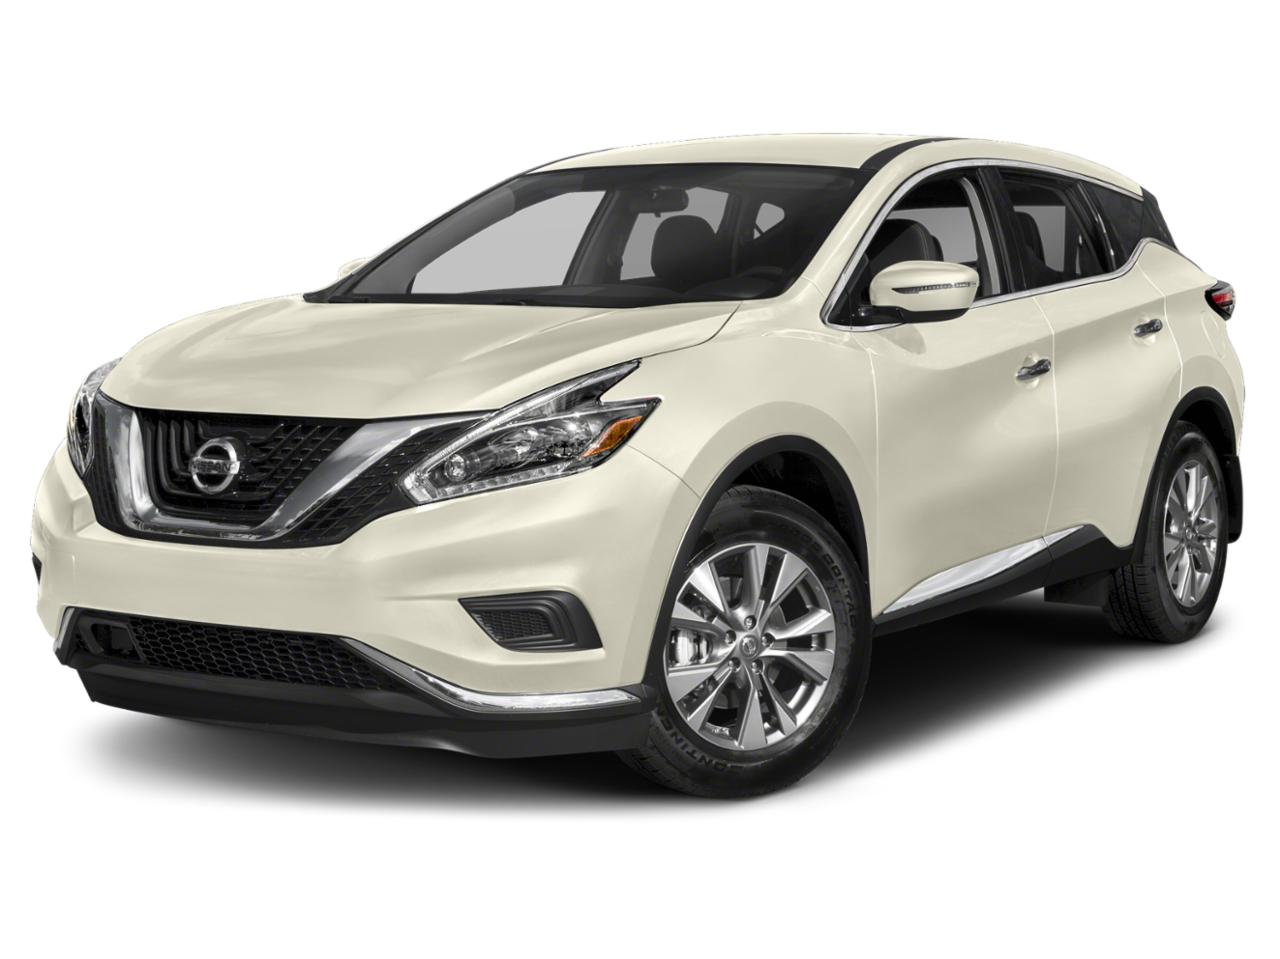 2018 Nissan Murano Vehicle Photo in Vincennes, IN 47591